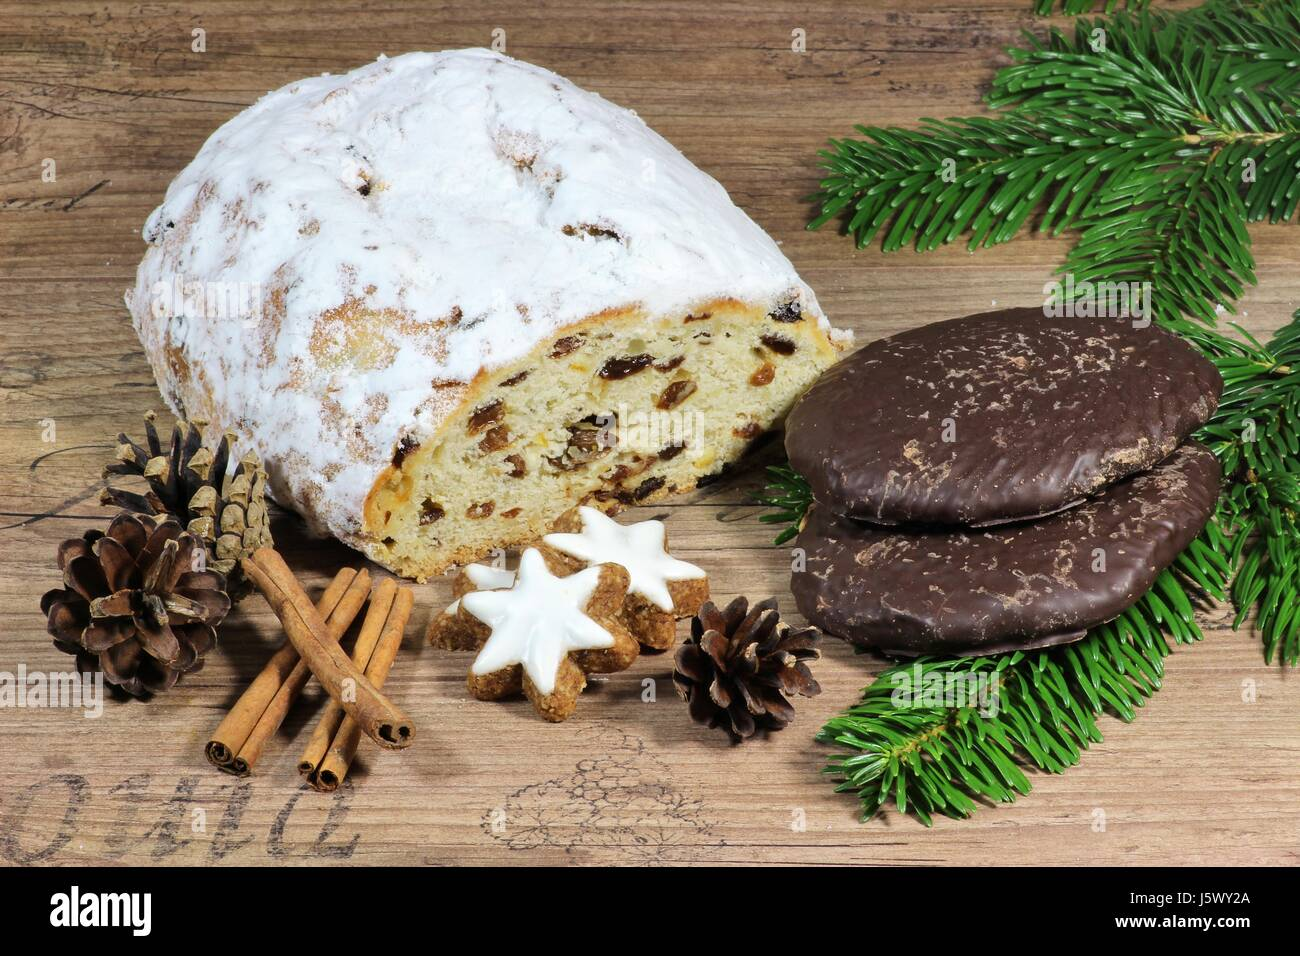 German Christmas Food.German Christmas Food Specialties On Wooden Background Stock